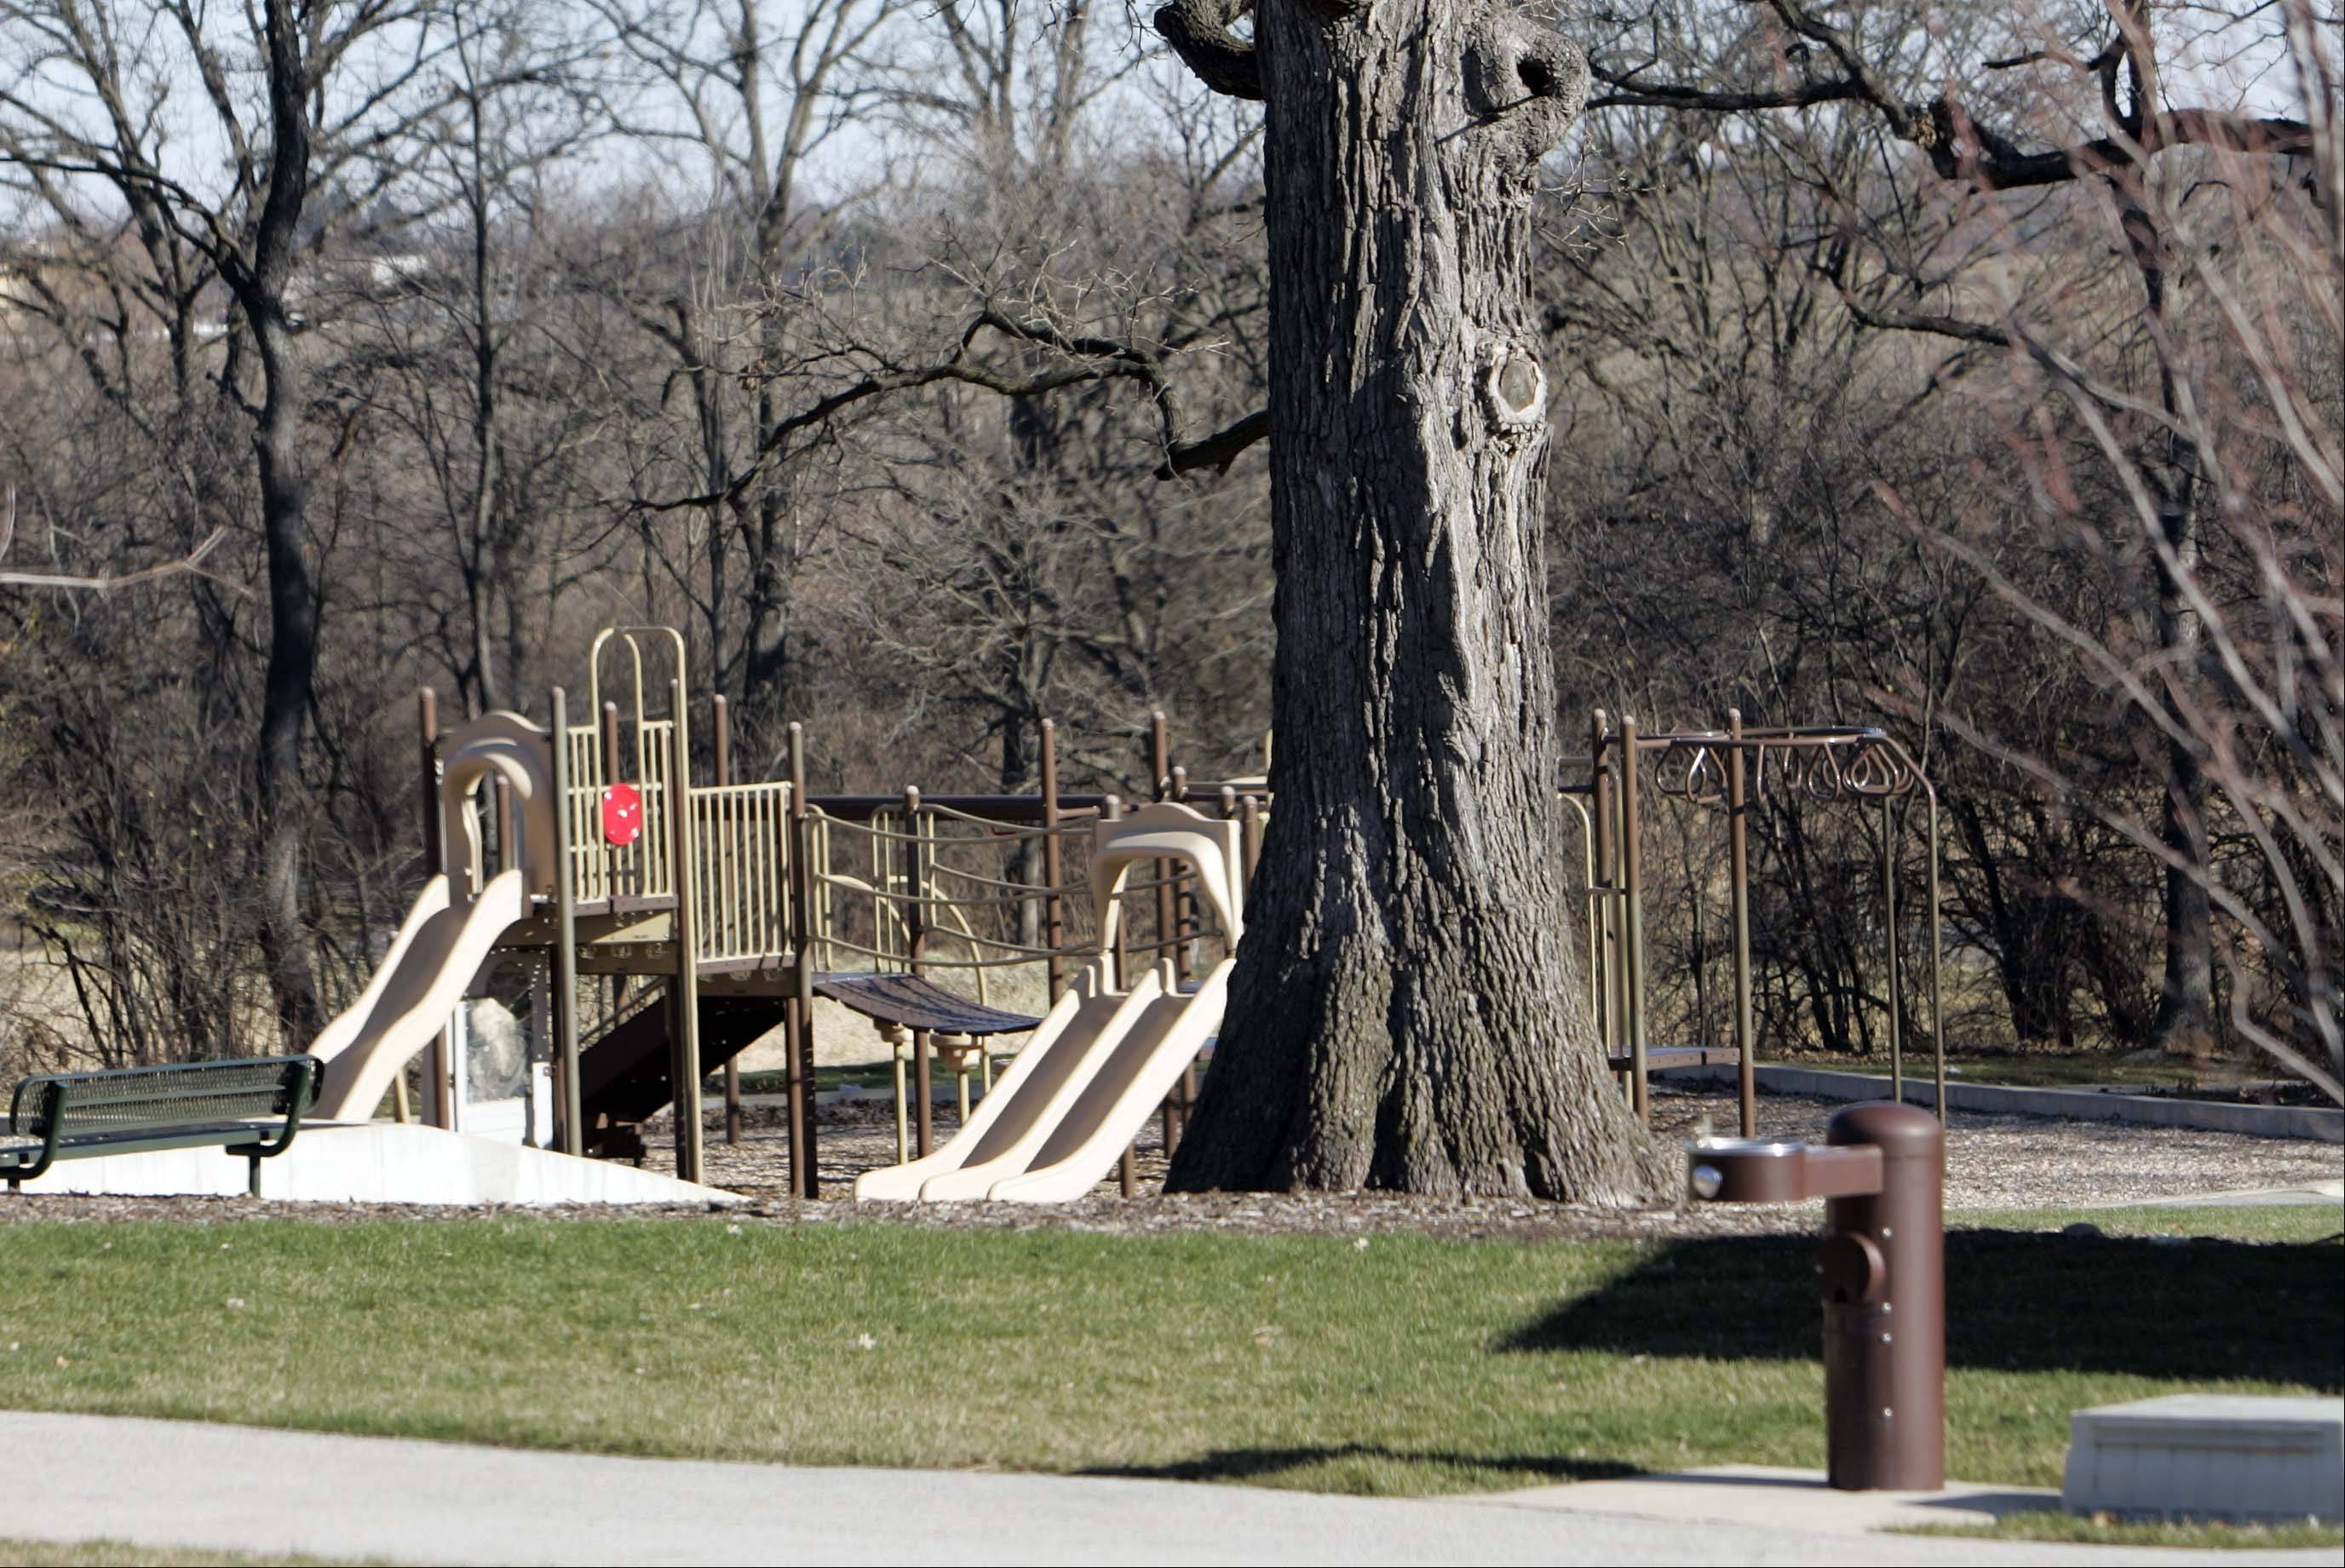 Hawk's Bluff Park in Tanglewood Hills spans 30 acres and showcases biodiversity as well as family-friendly features.